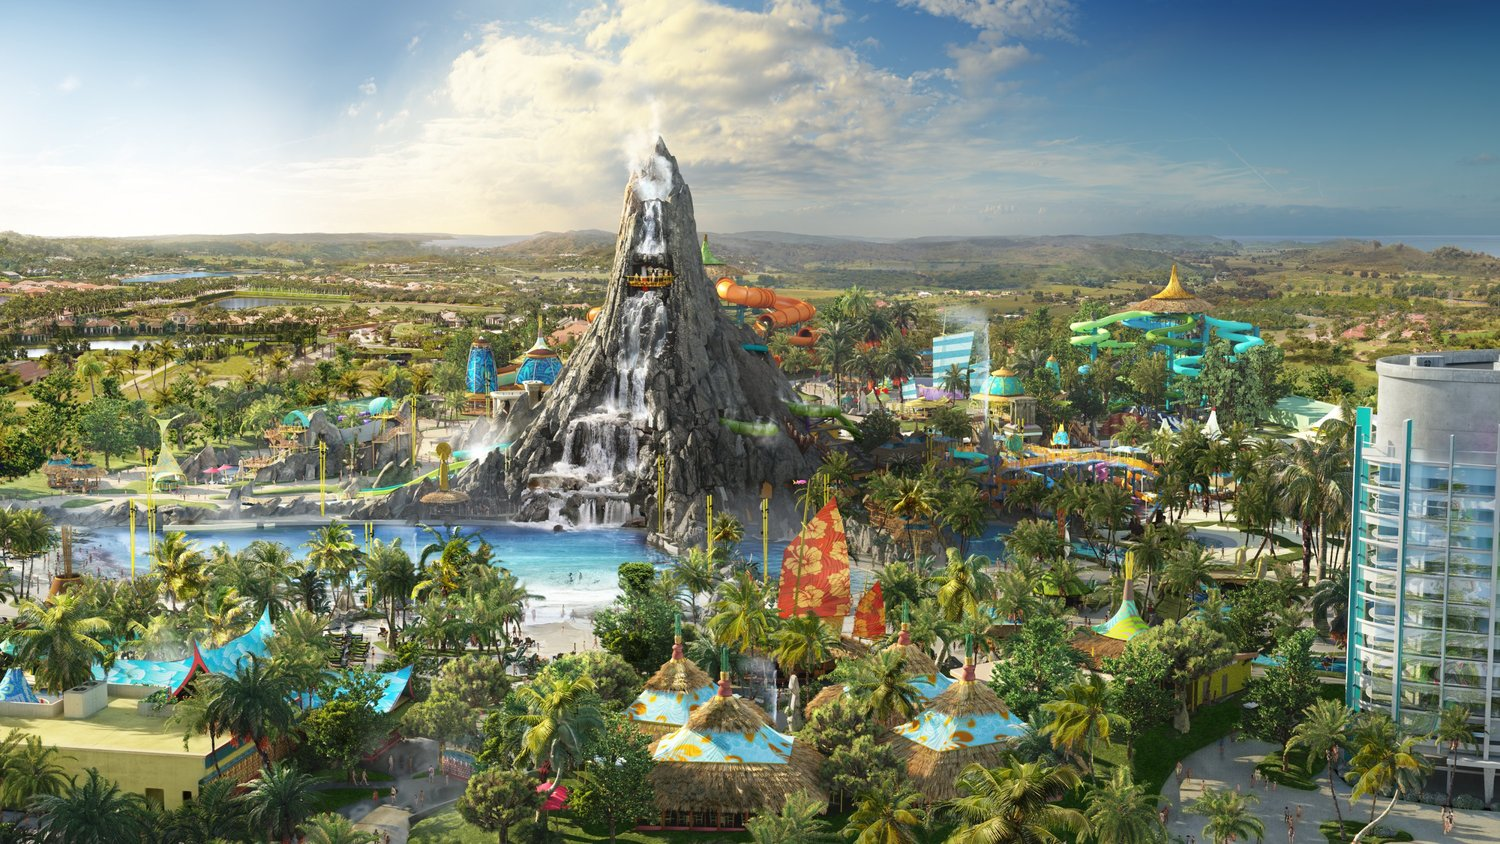 Volcano Bay Park Overview